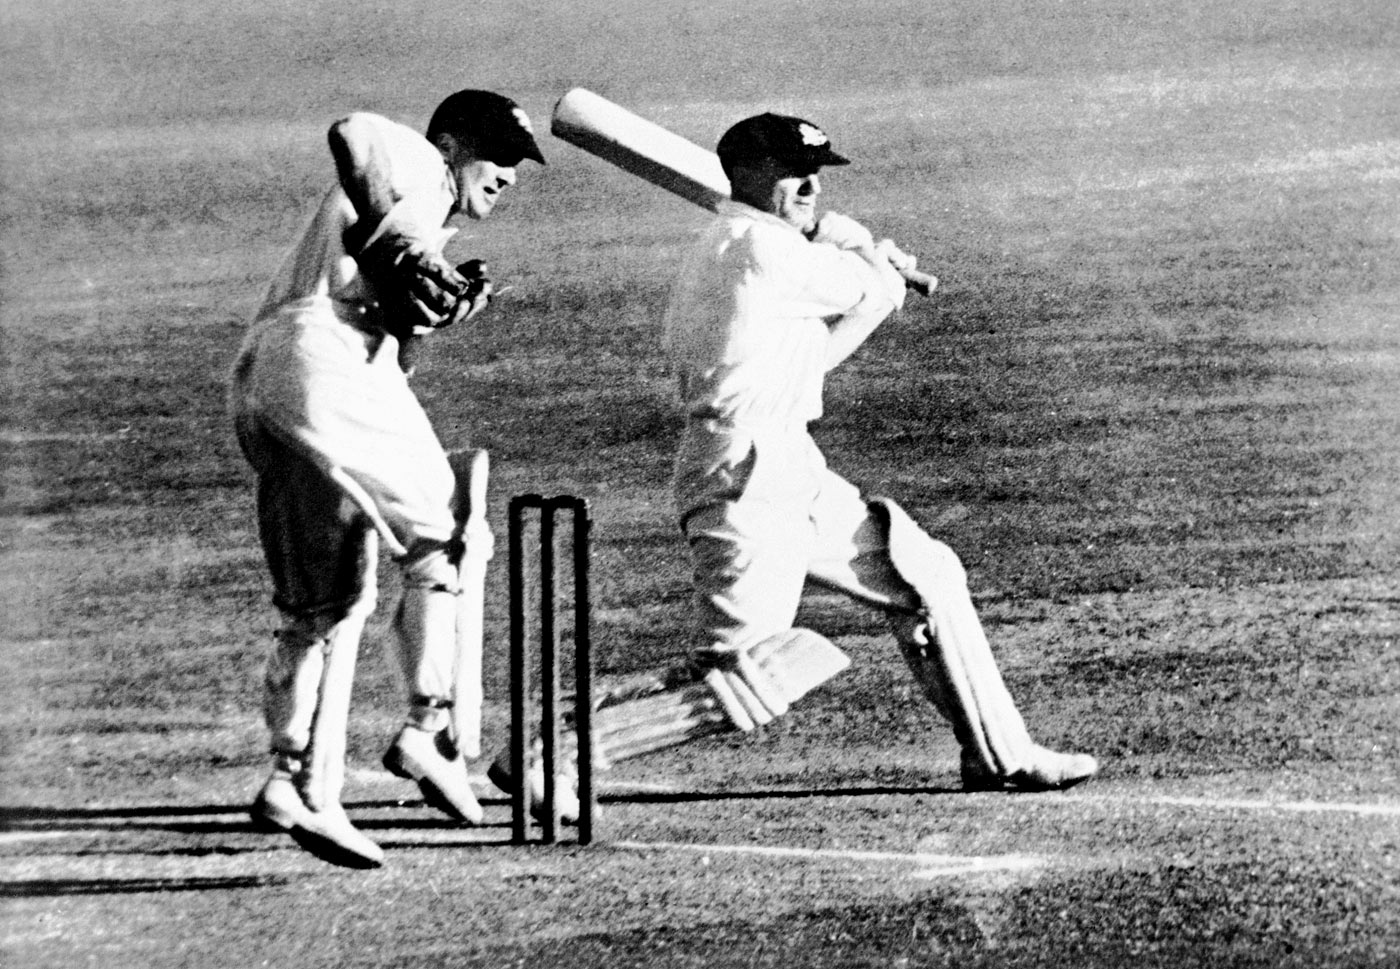 After being reprieved by umpire Borwick in 1946, an emboldened Bradman was able to make a double-century in the next Test, and thus undeservingly remain in the annals of cricket history as the greatest batsman of them all